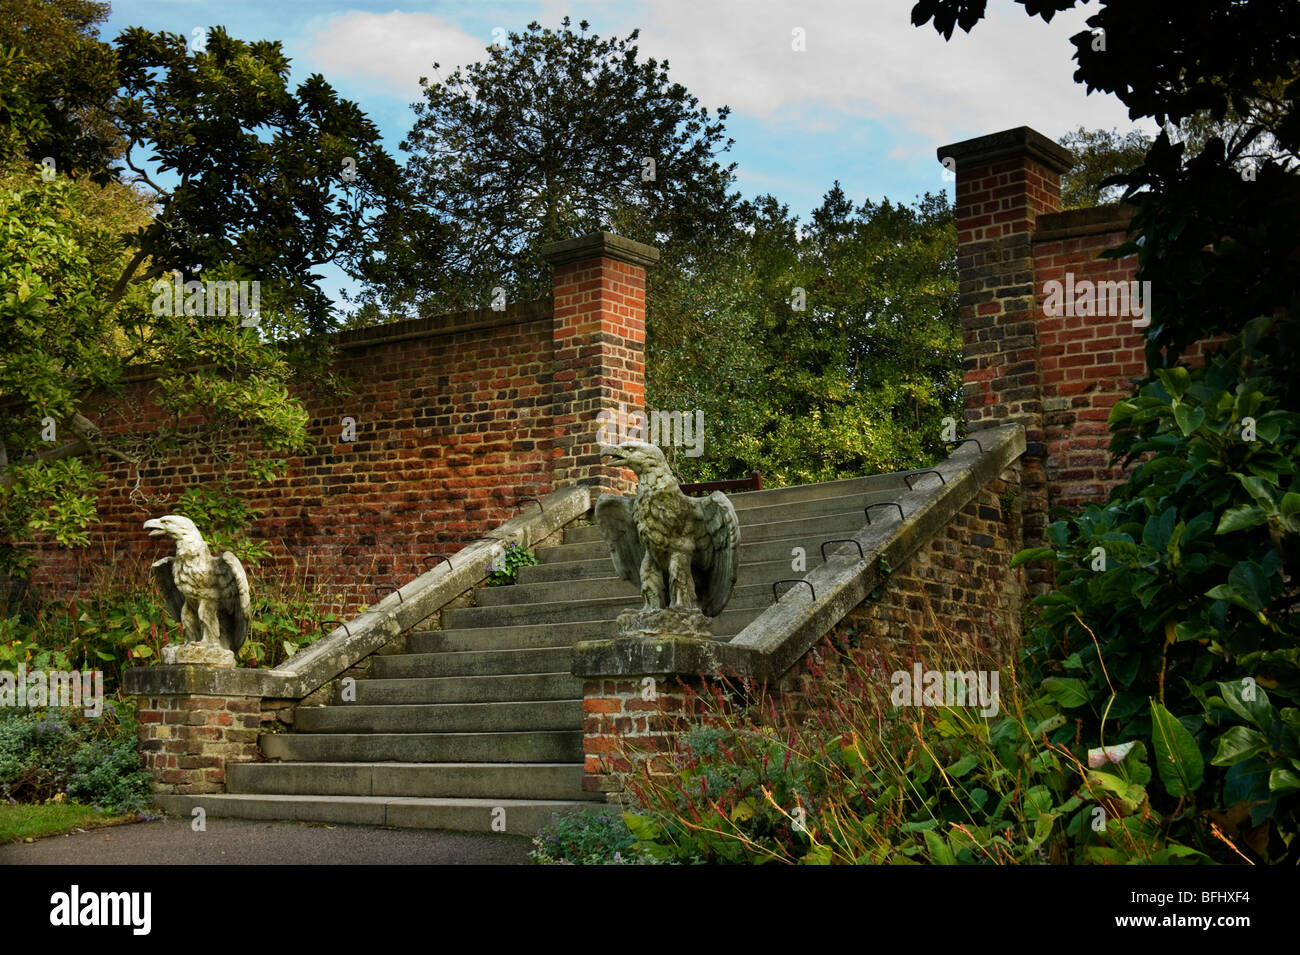 Stone gargoyle seen in Waterlow Park North London - Stock Image